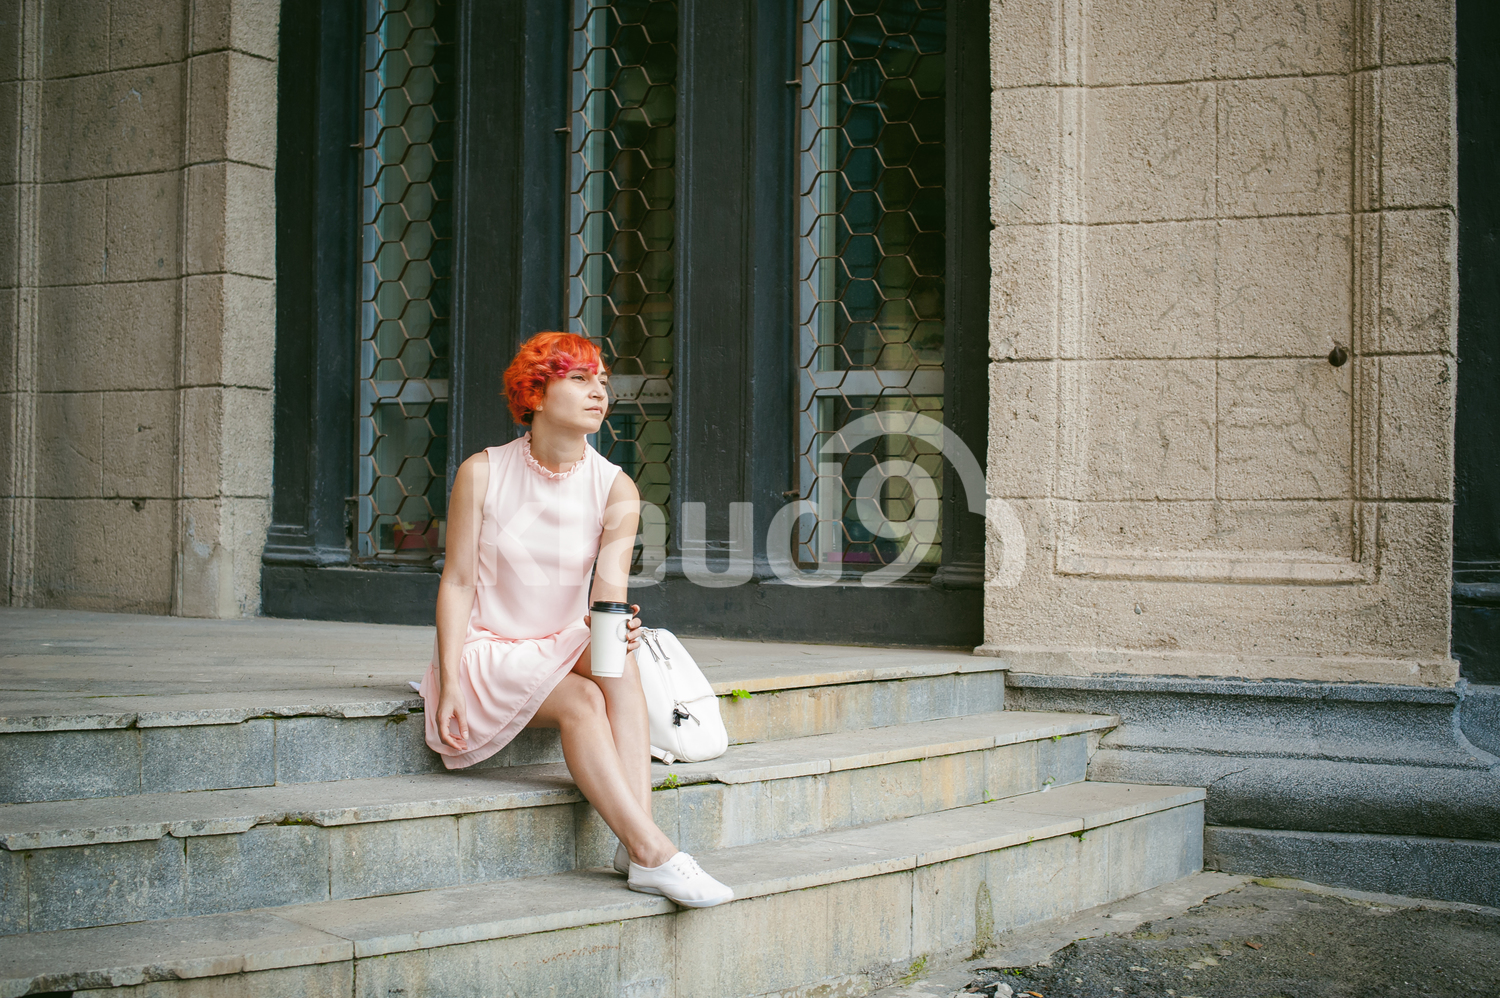 Lady with red hair holding a coffee cup